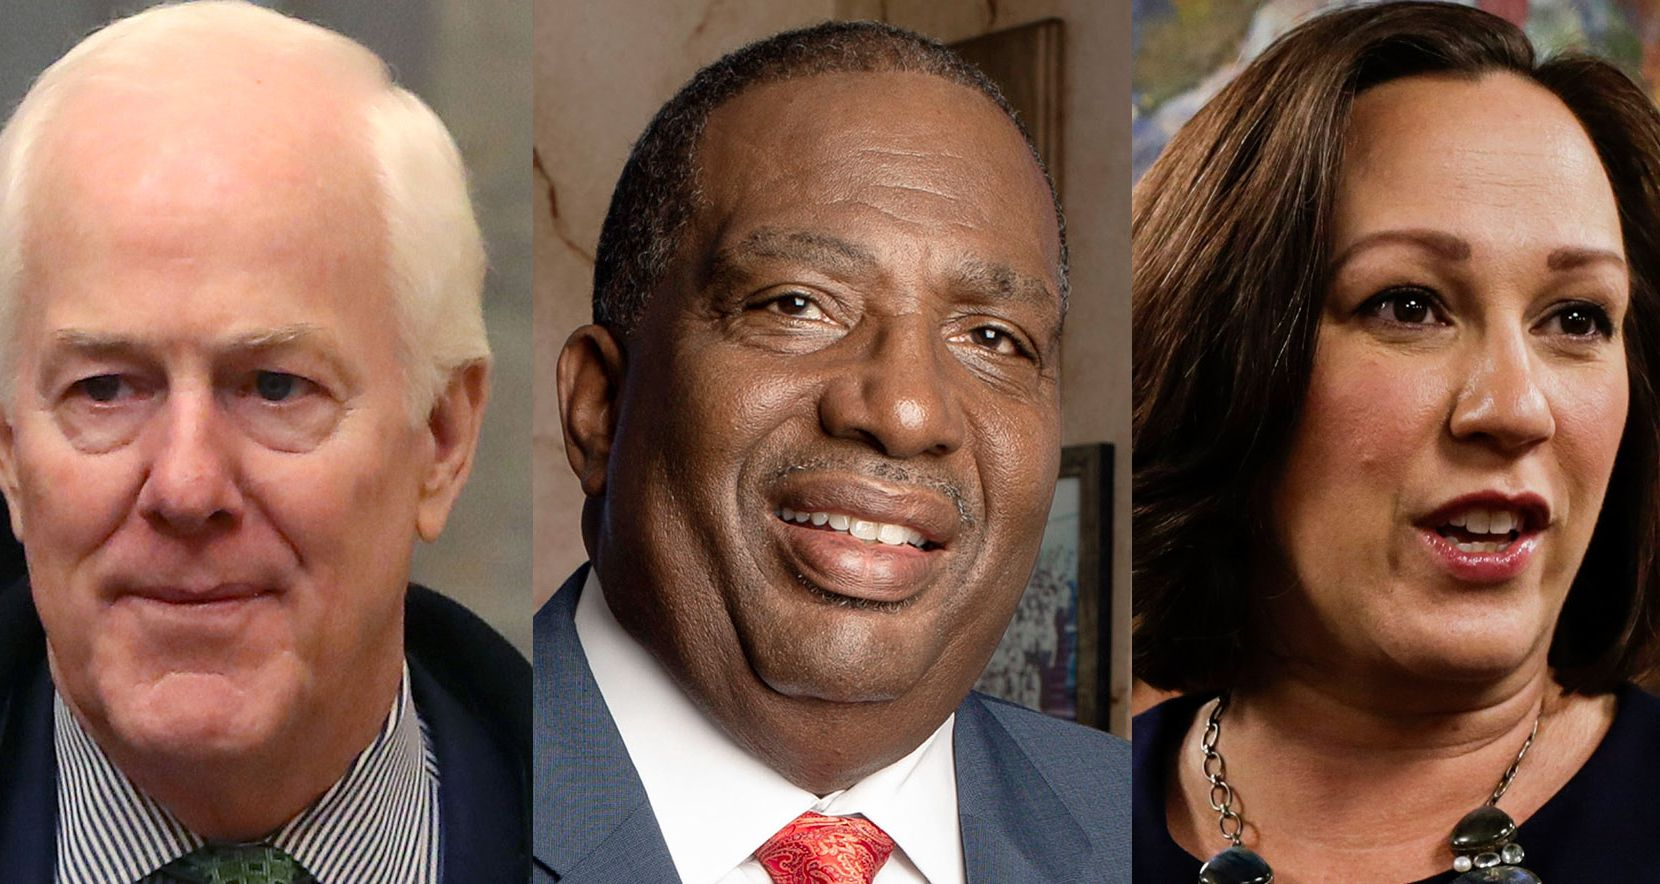 A composite image showing (from left) US Senator John Cornyn (R, Texas);  Texas State Senator and Democratic candidate for Senate Royce West; MJ Hegar, Democratic candidate for Senate. (Credits:  Mark Wilson/Getty Images; Dallas Morning News archives; Bronte Wittpenn/Austin American-Statesman via AP)